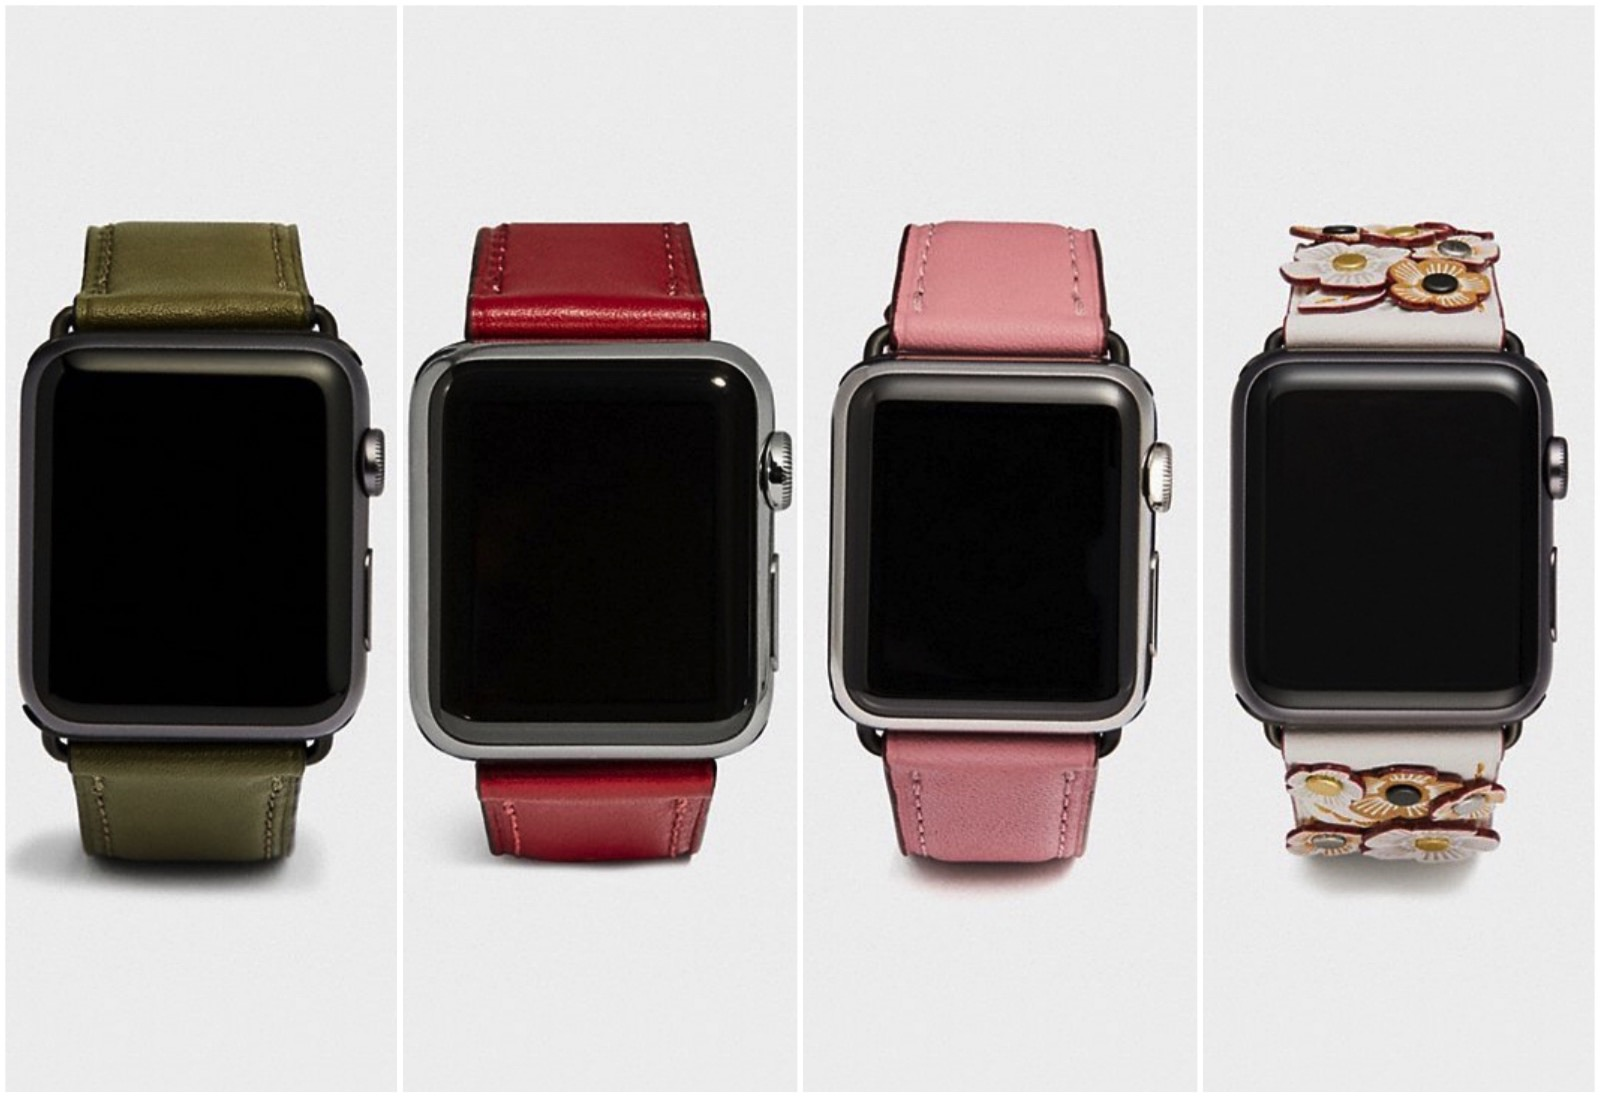 New COACH bands for apple watch